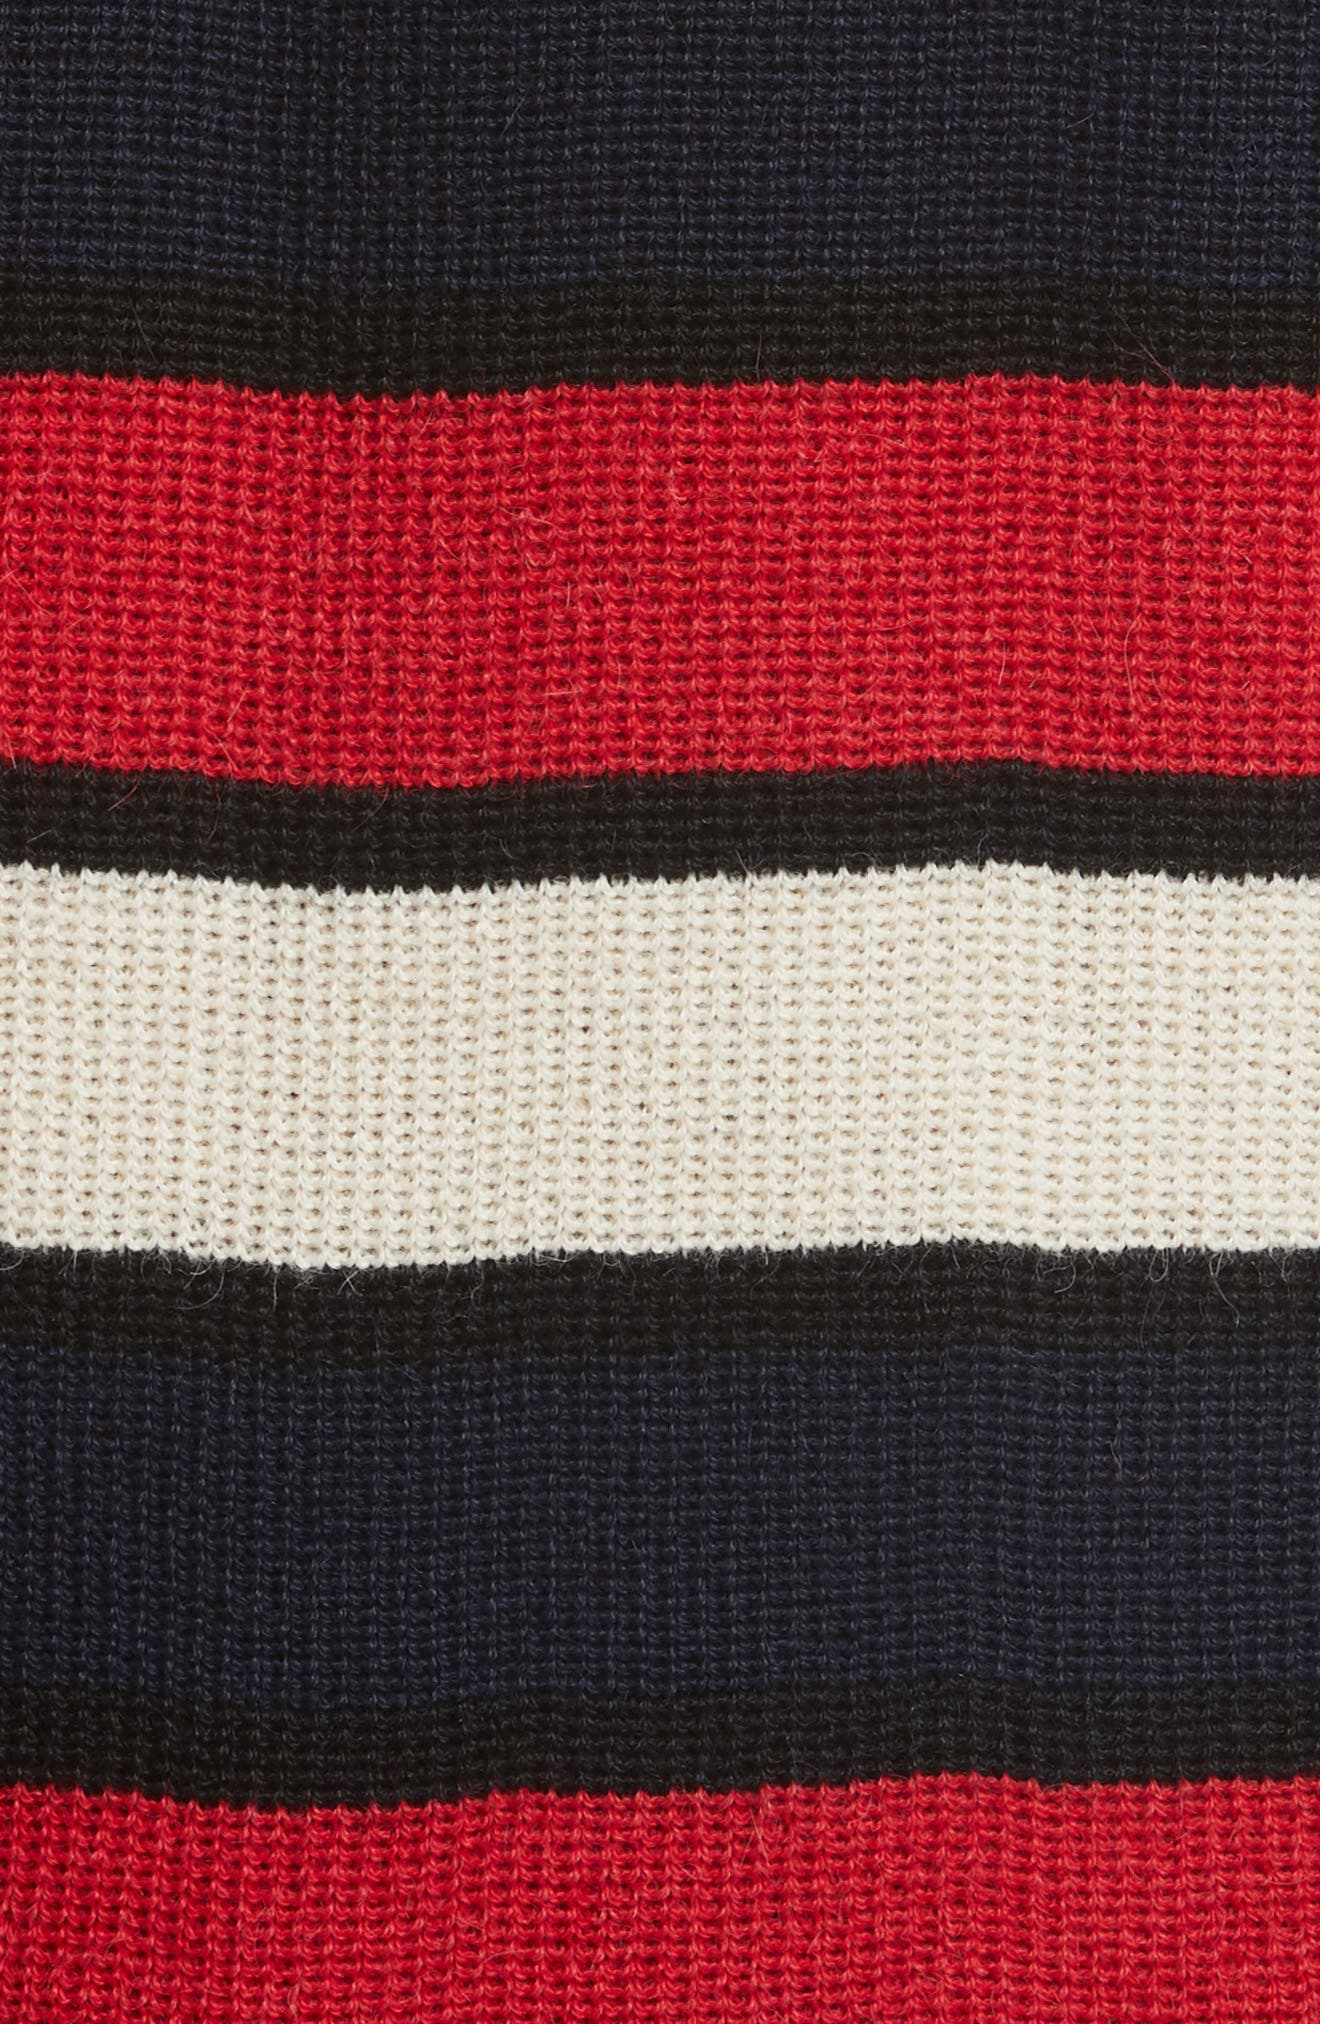 Austrie Stripe Alpaca Sweater,                             Alternate thumbnail 5, color,                             Red/ Ivory/ Navy